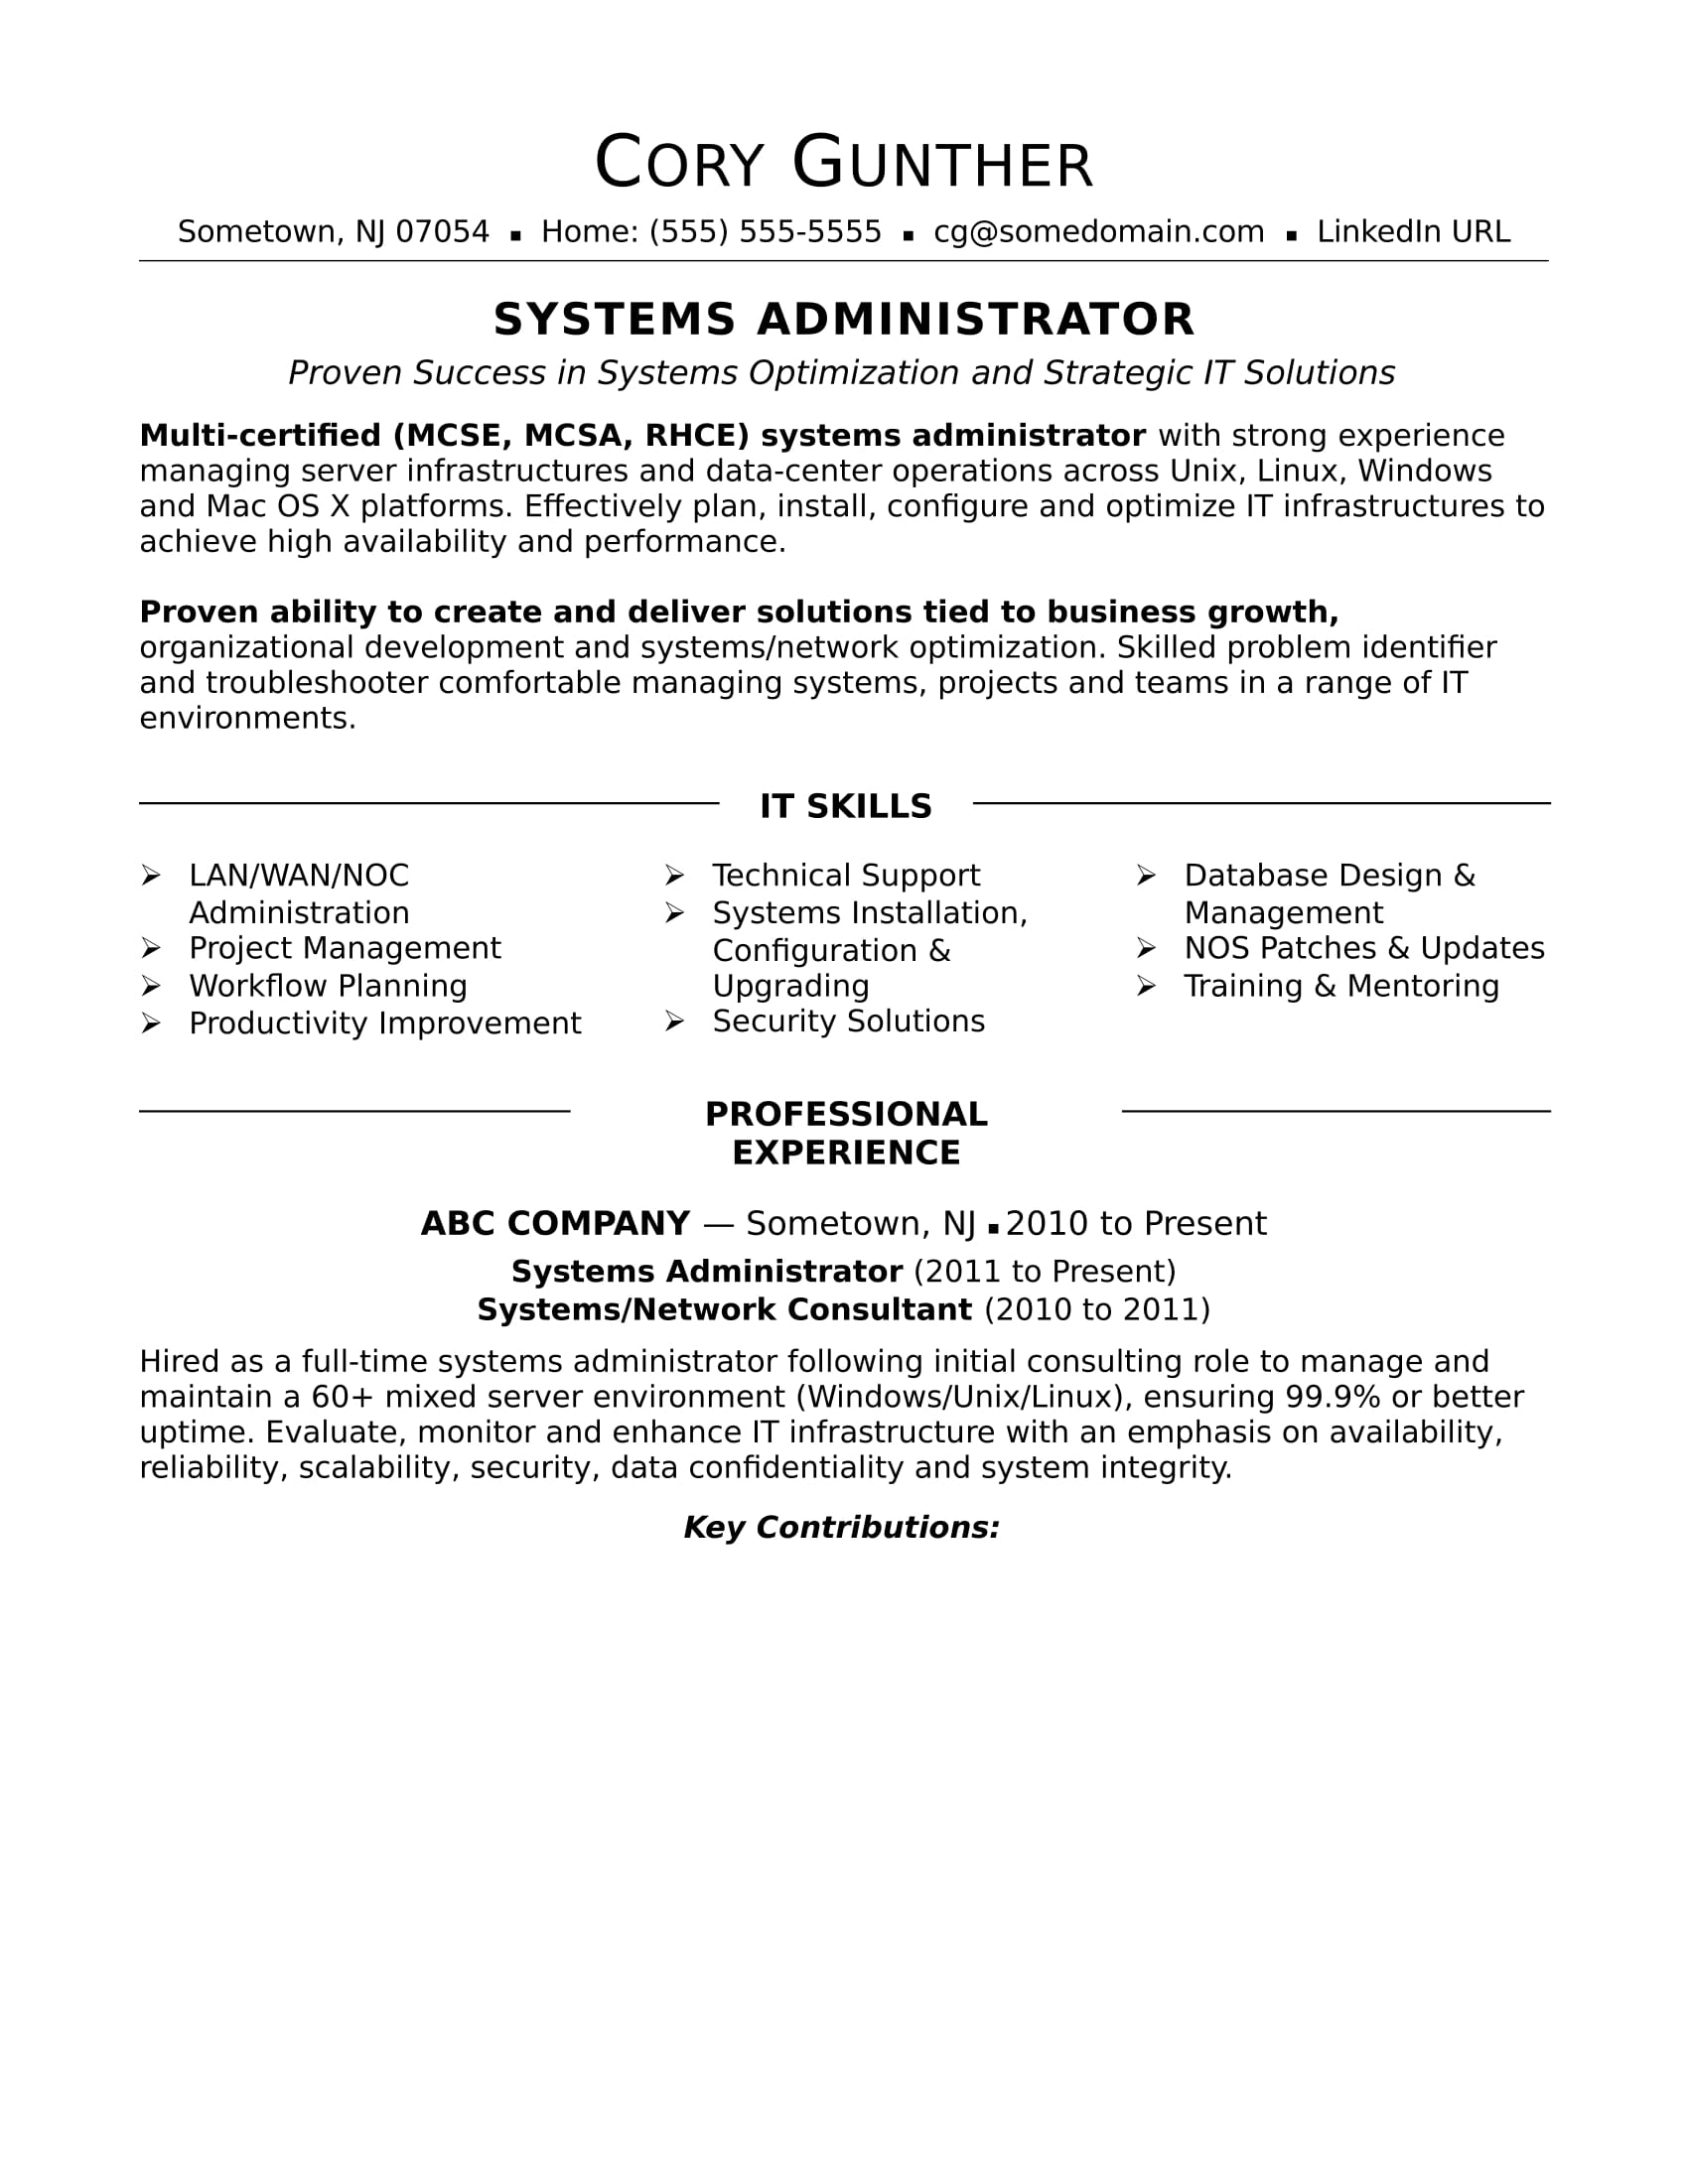 sample resume for an experienced systems administrator monster full time job skills and Resume Sample Resume For Full Time Job